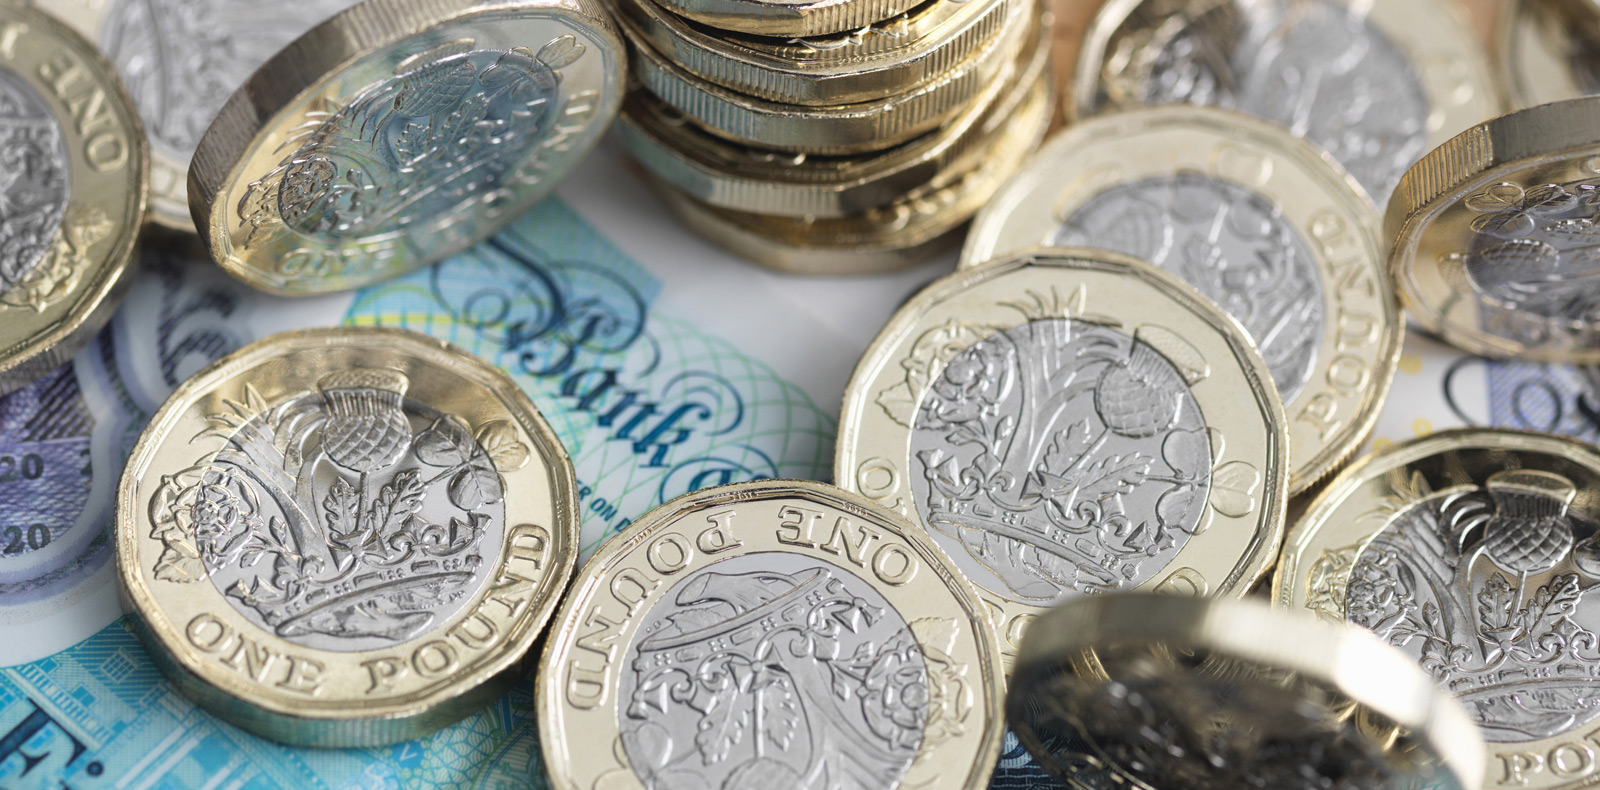 Positive Brexit Sentiment Leads to Sterling Strength